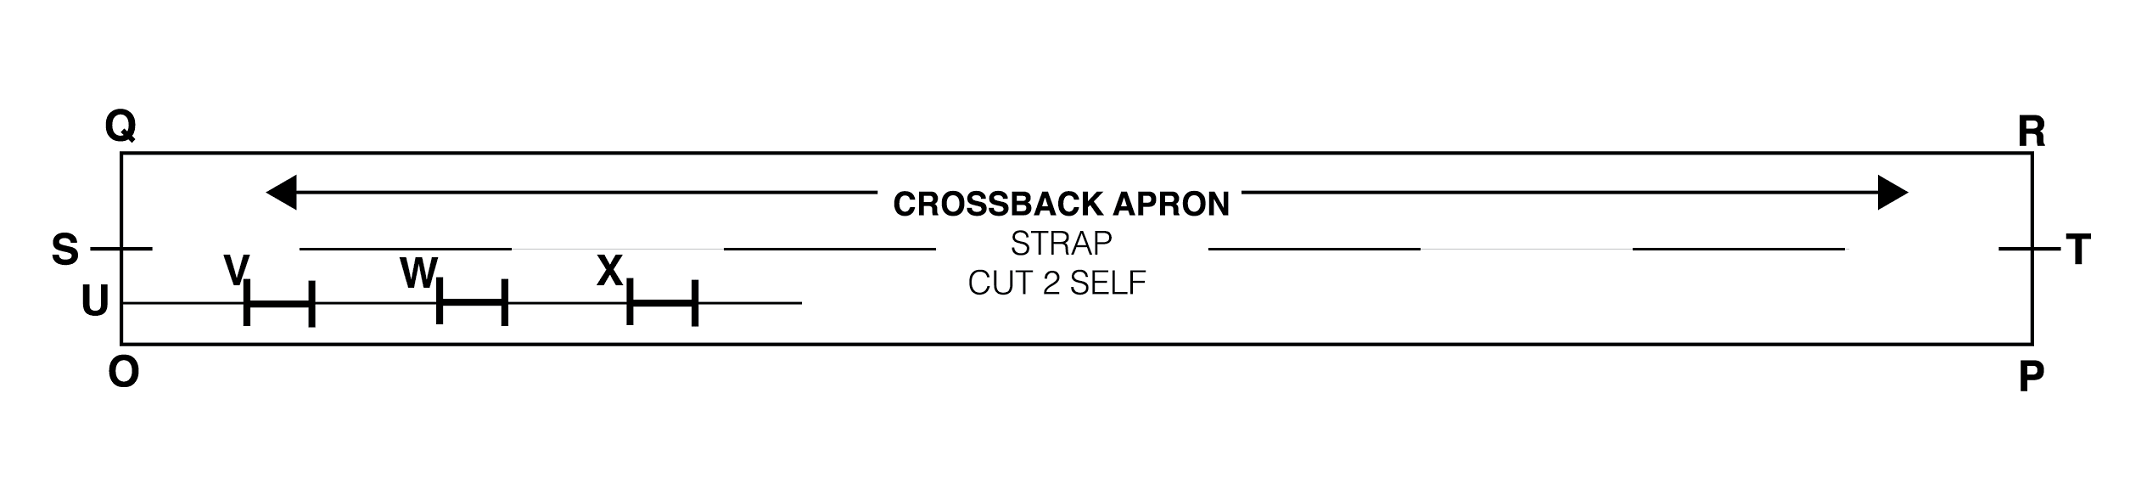 Crossback Apron Drafting Instructions